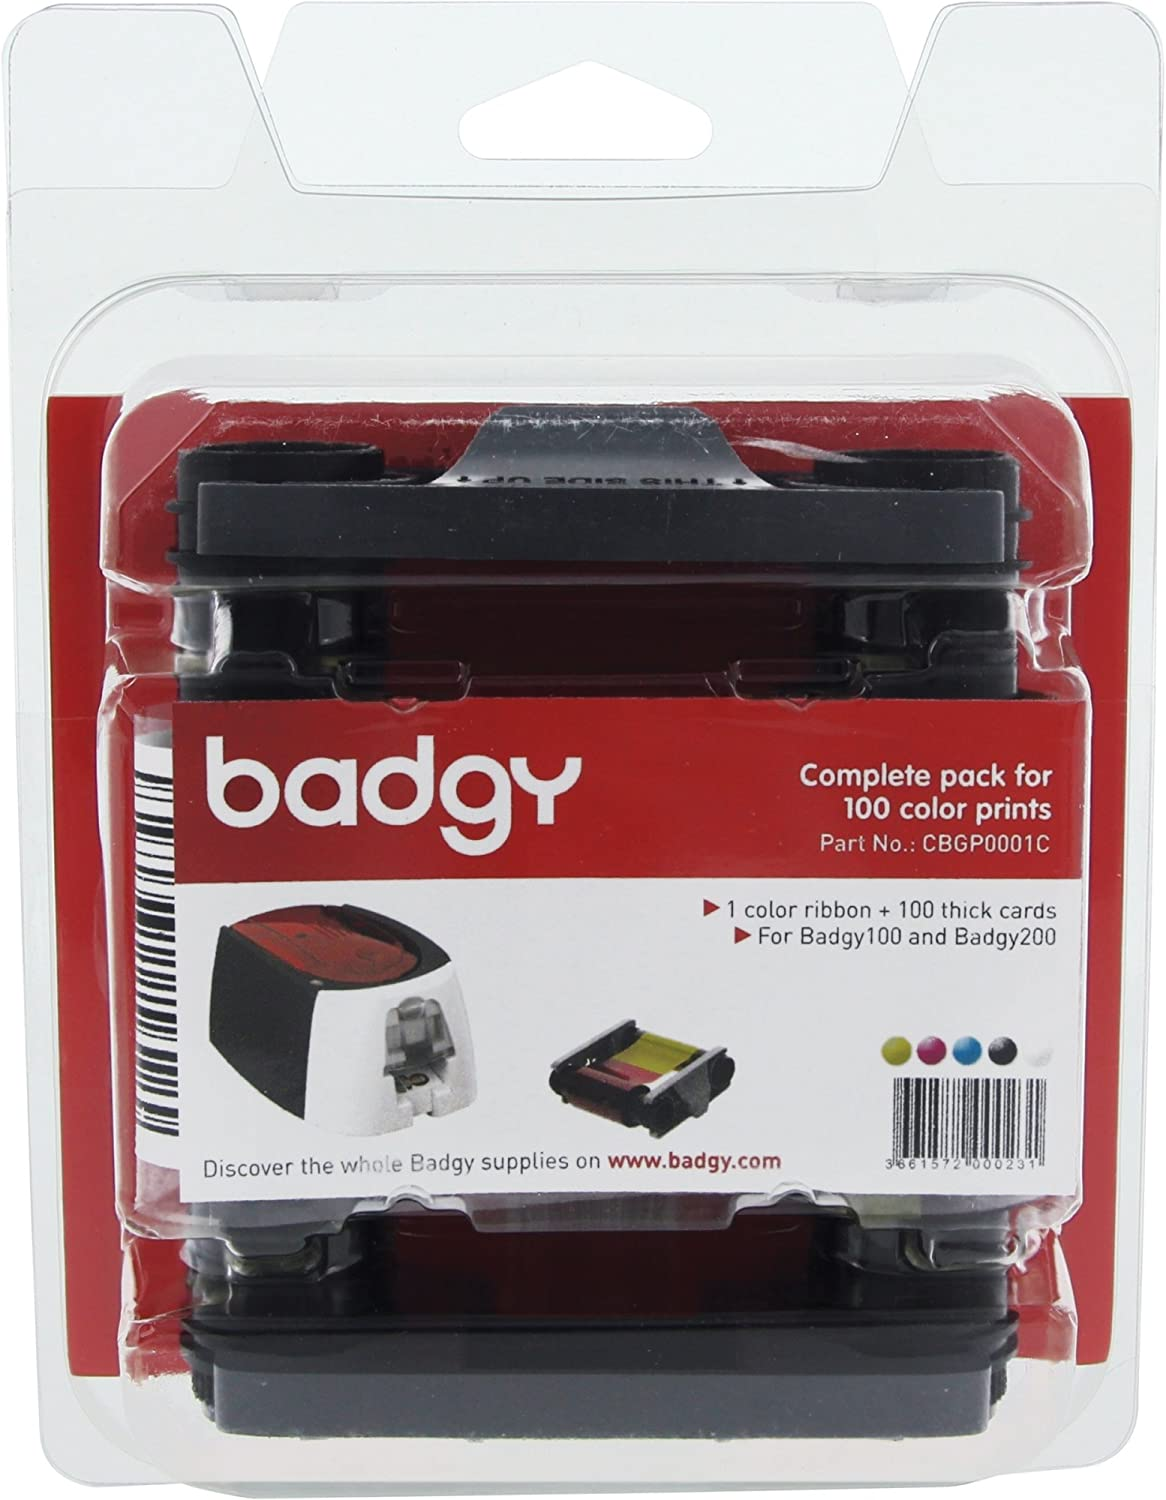 Evolis Badgy100 & 200 Consumable kit - Compatible with Badgy100 & 200 printers only - CBGP0001C